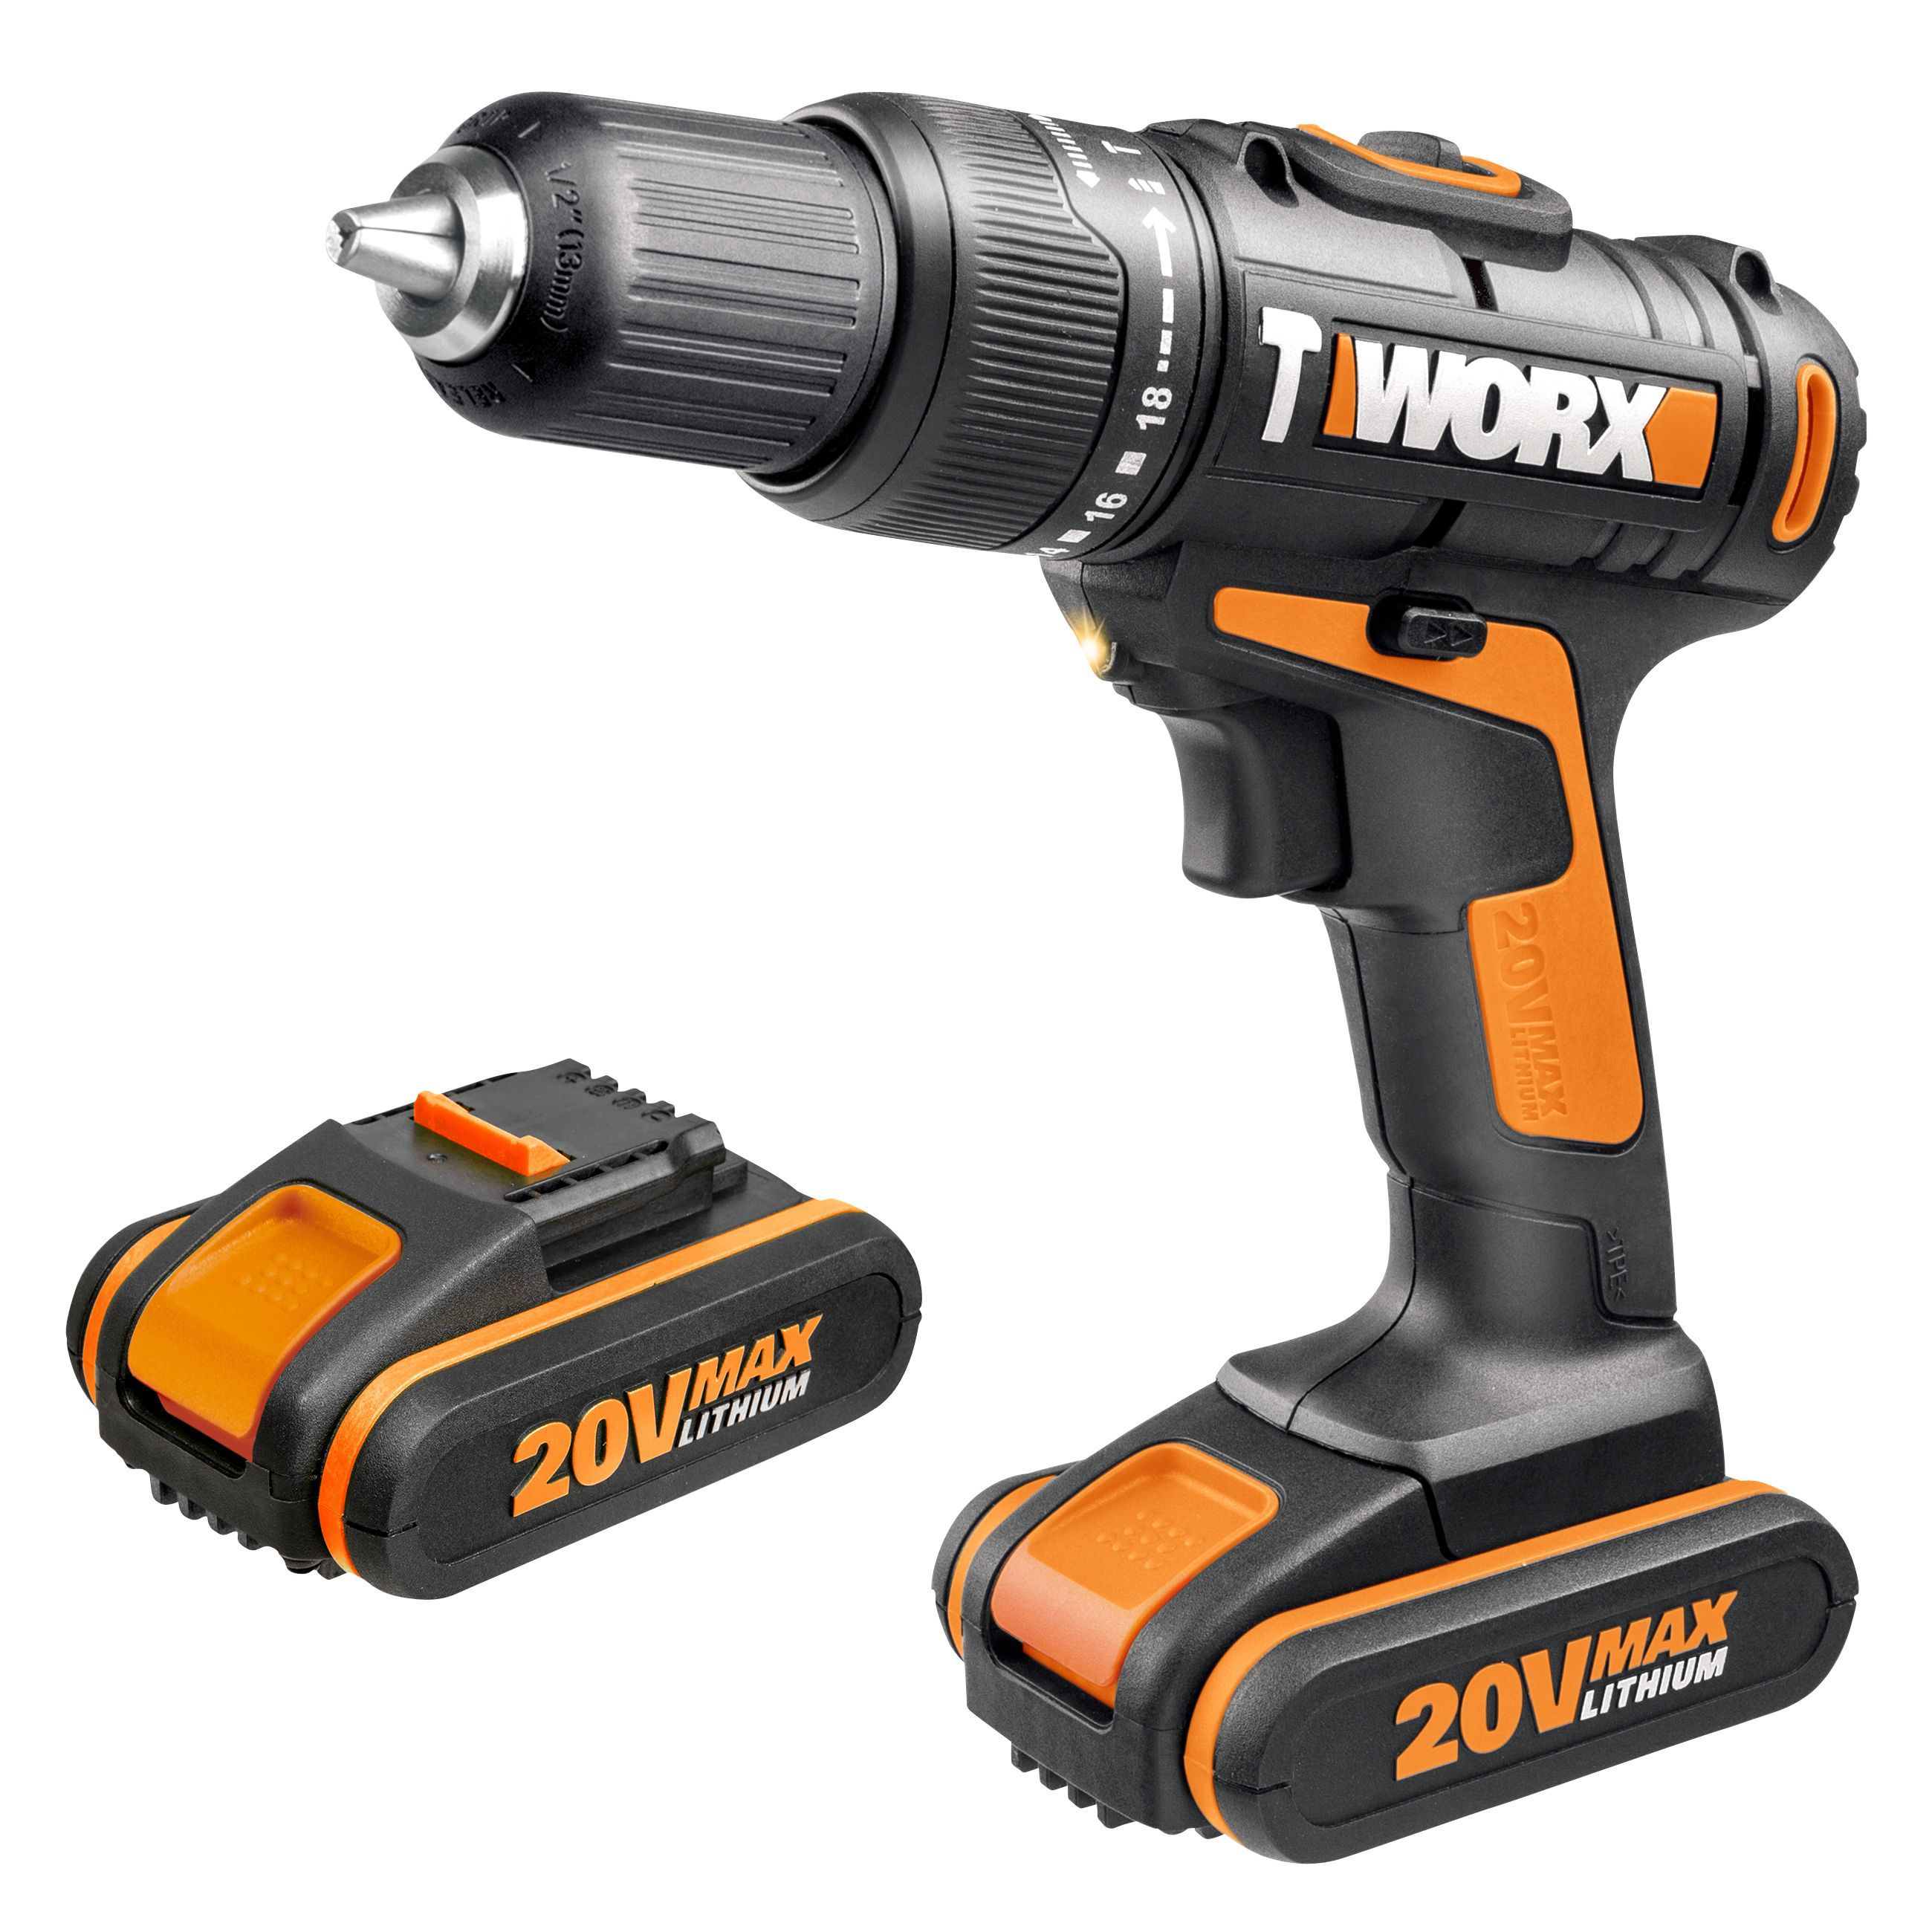 worx cordless 20v li ion brushed drill 1 battery wx386 2 departments tradepoint. Black Bedroom Furniture Sets. Home Design Ideas